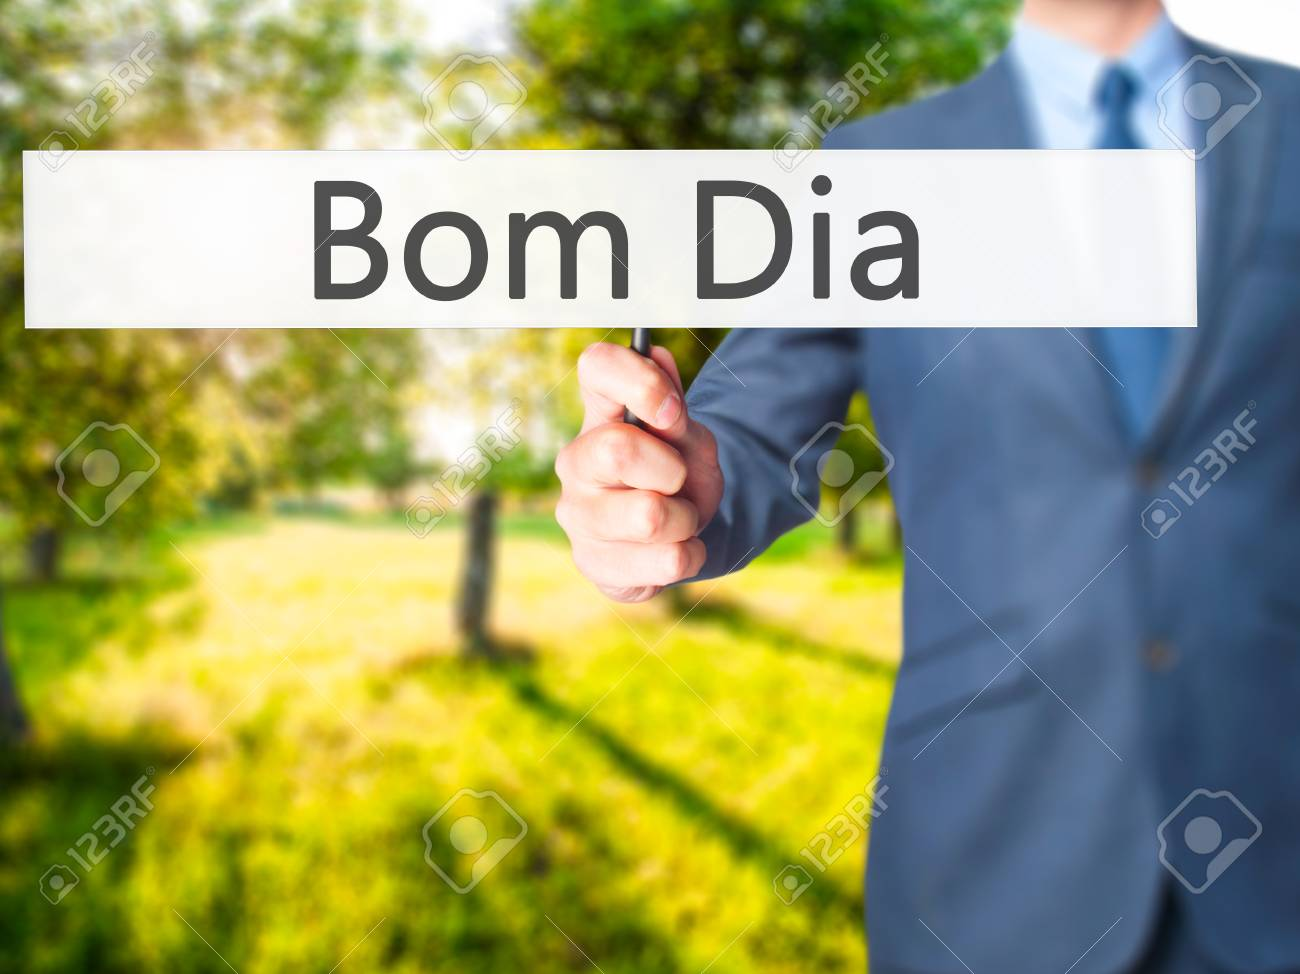 Bom Dia In Portuguese Good Morning Businessman Hand Holding